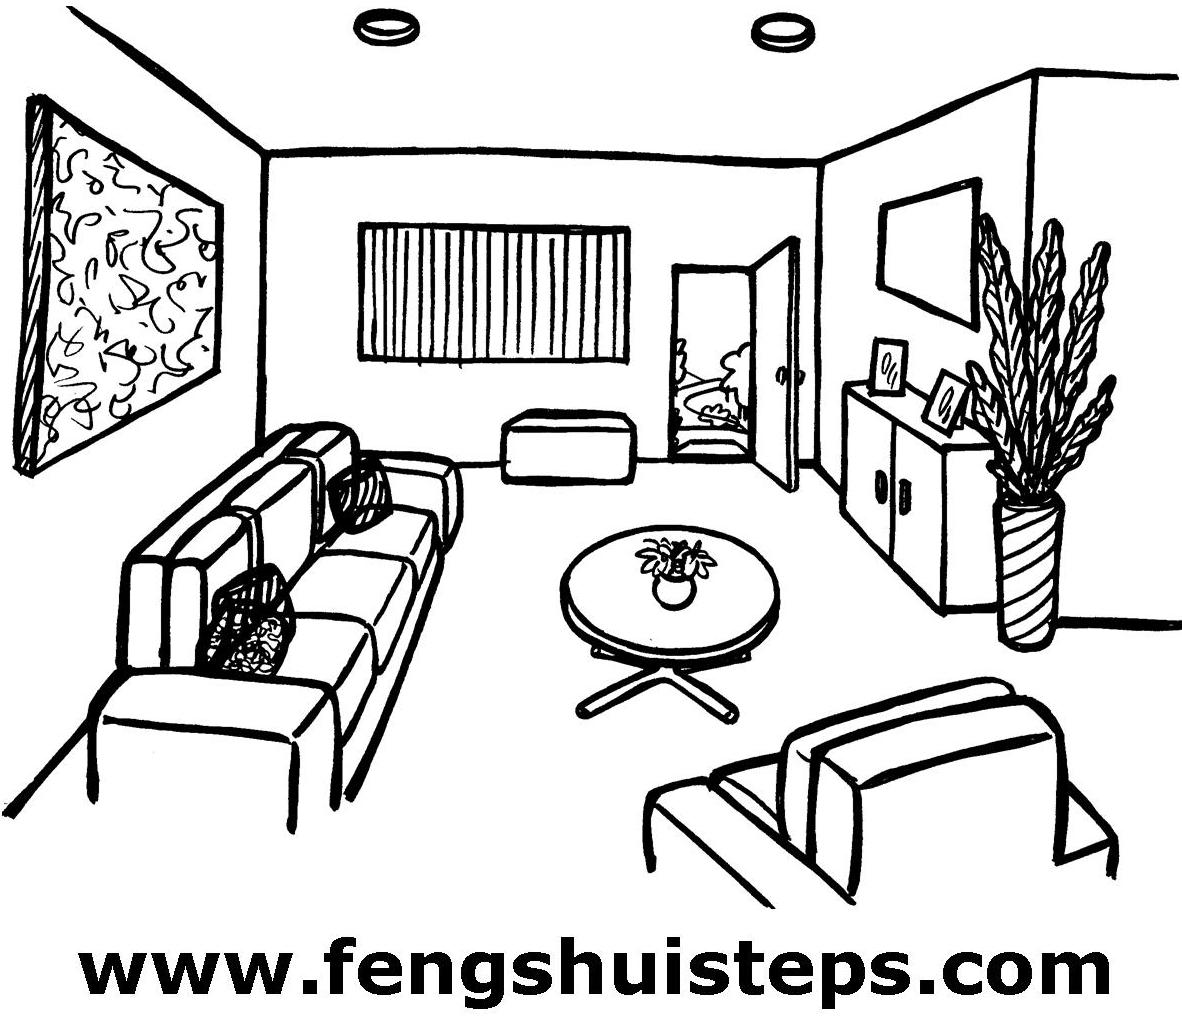 Good Feng Shui Position For Television